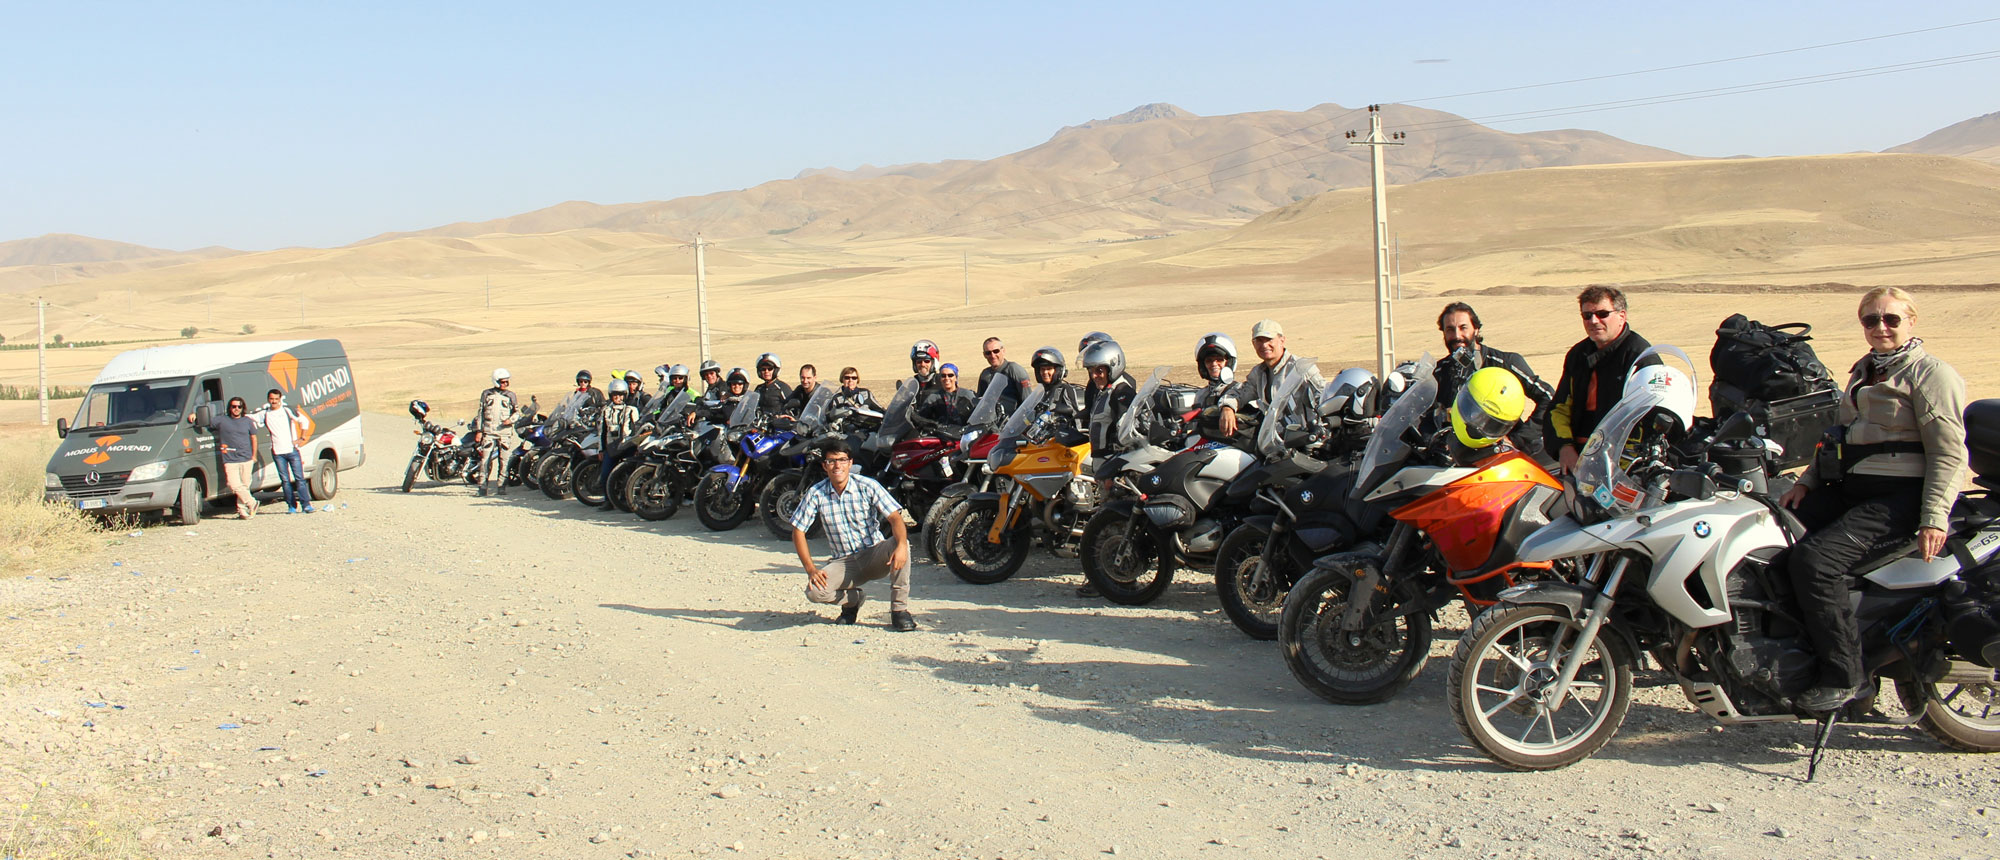 17 motorbike travelers under Hossein's leadership in Iran